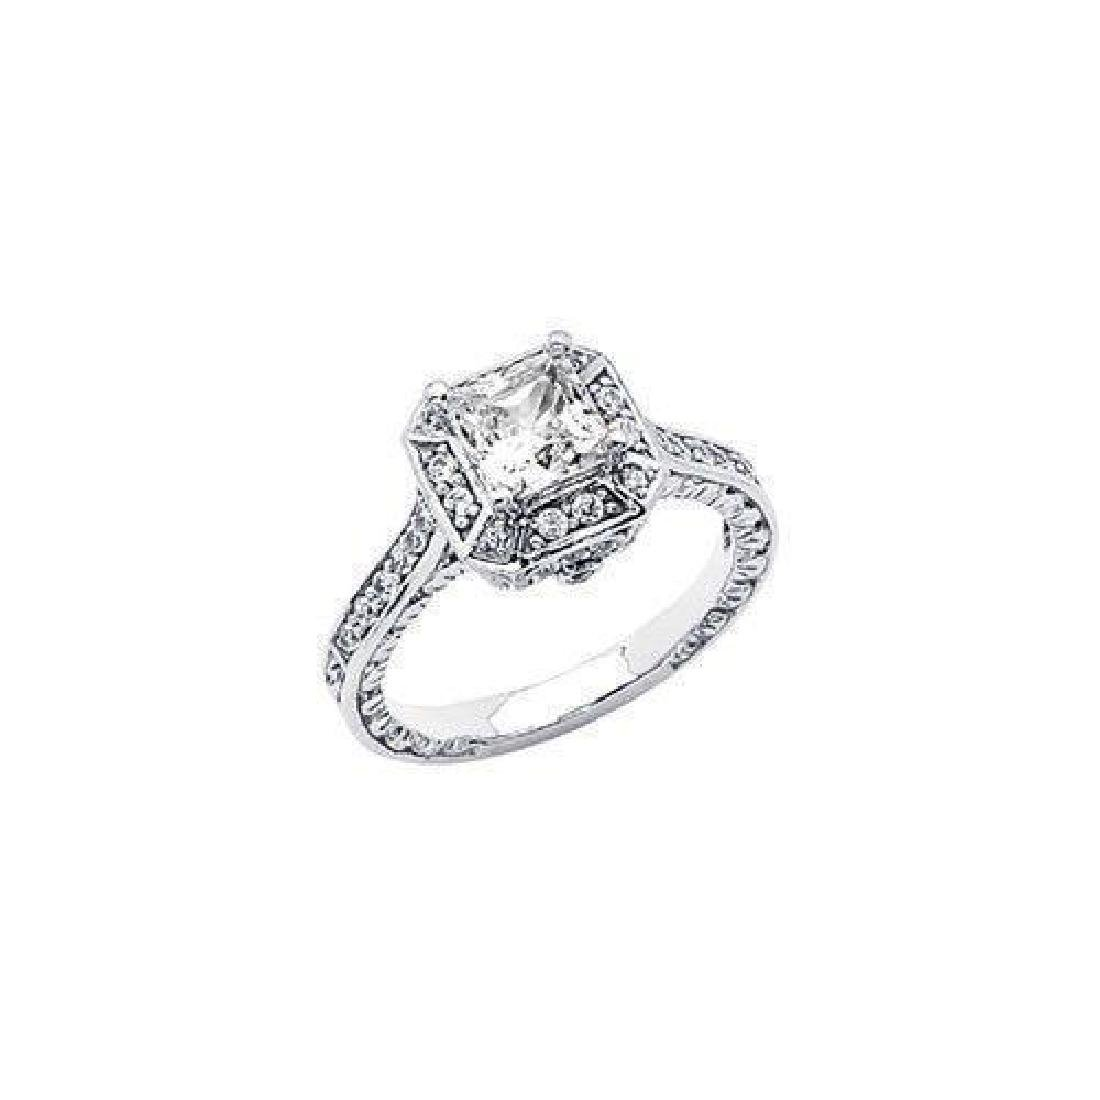 1.75 CT. FLAWLESS BIANCO DIAMOND RING 14K SOLID GOLD